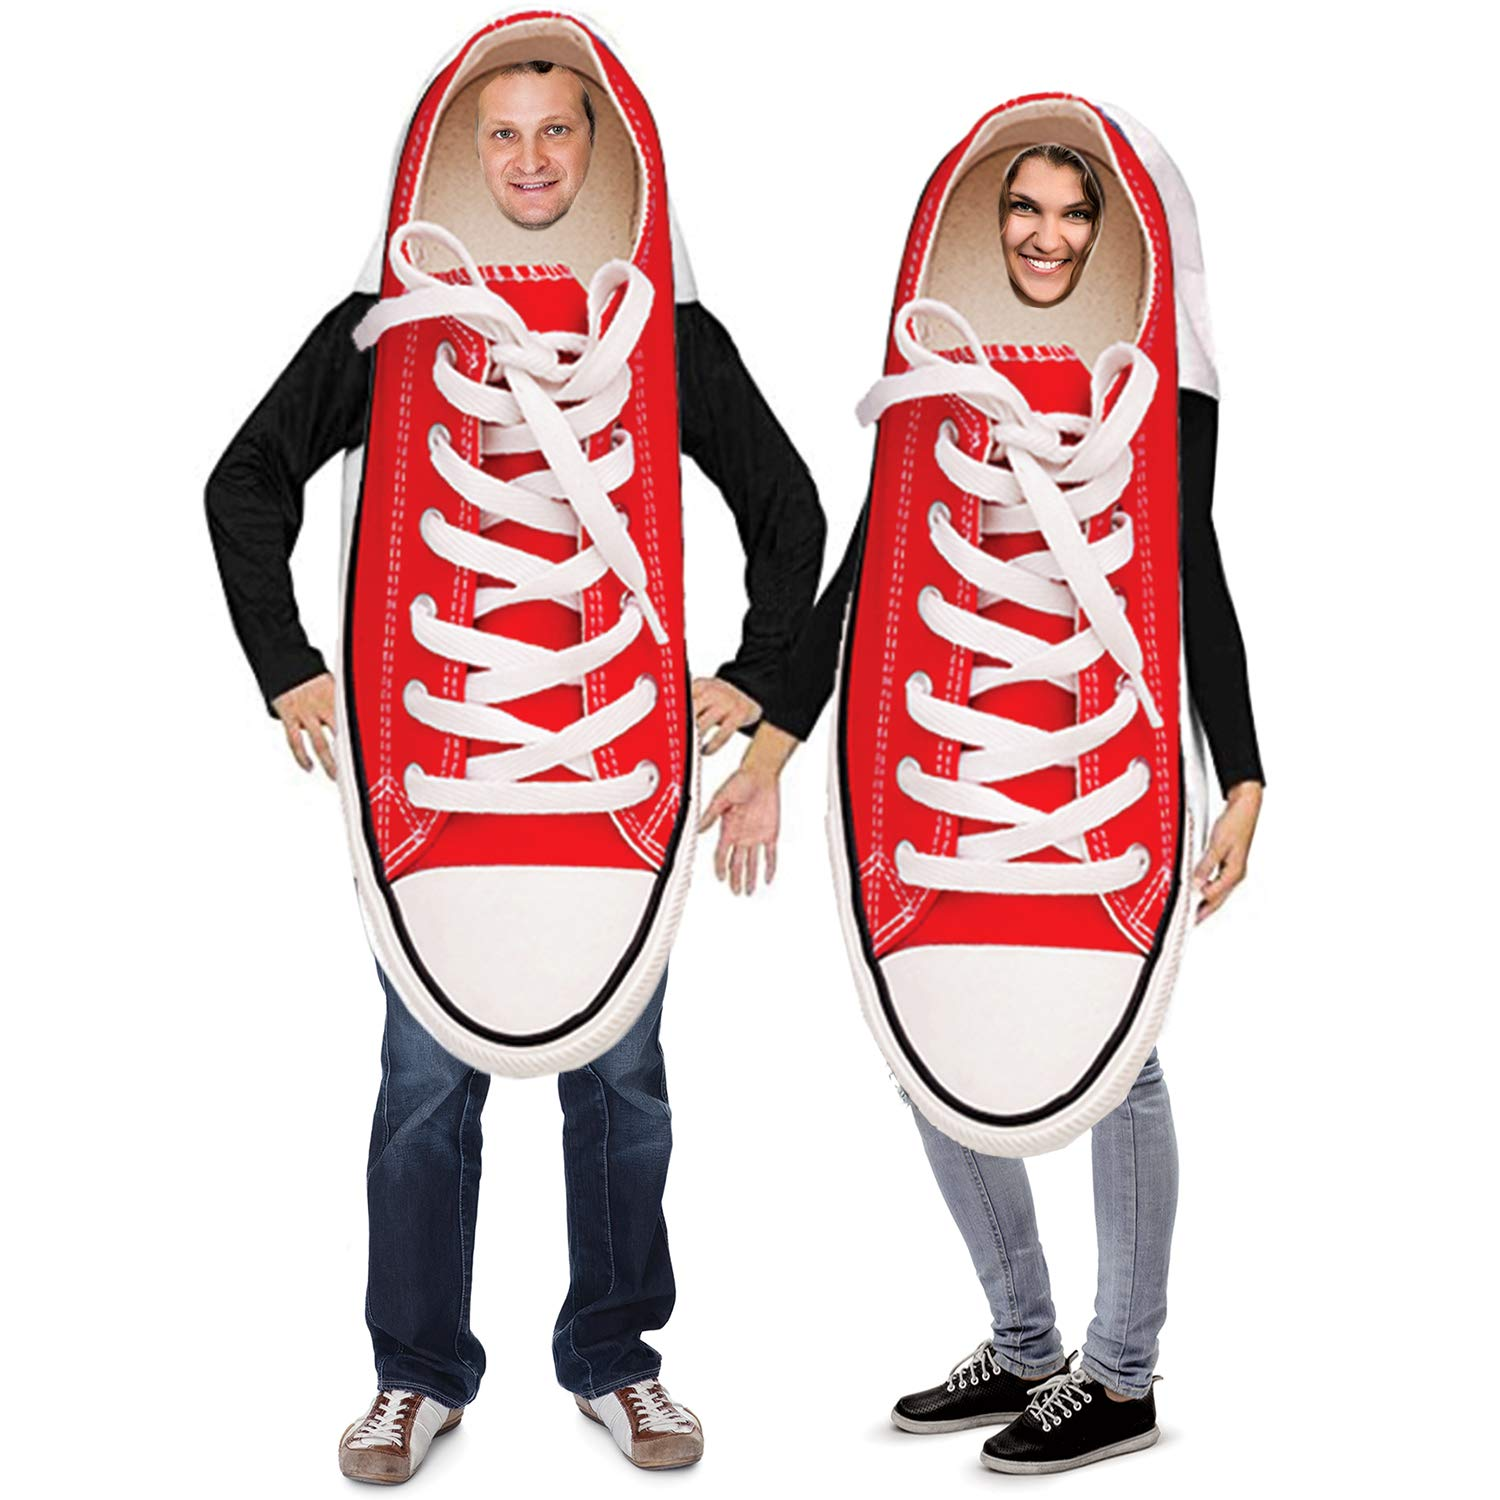 Tigerdoe Couples Costumes - Novelty Sneaker Costume - Funny Adult Halloween Costumes - 2 Pc by Tigerdoe